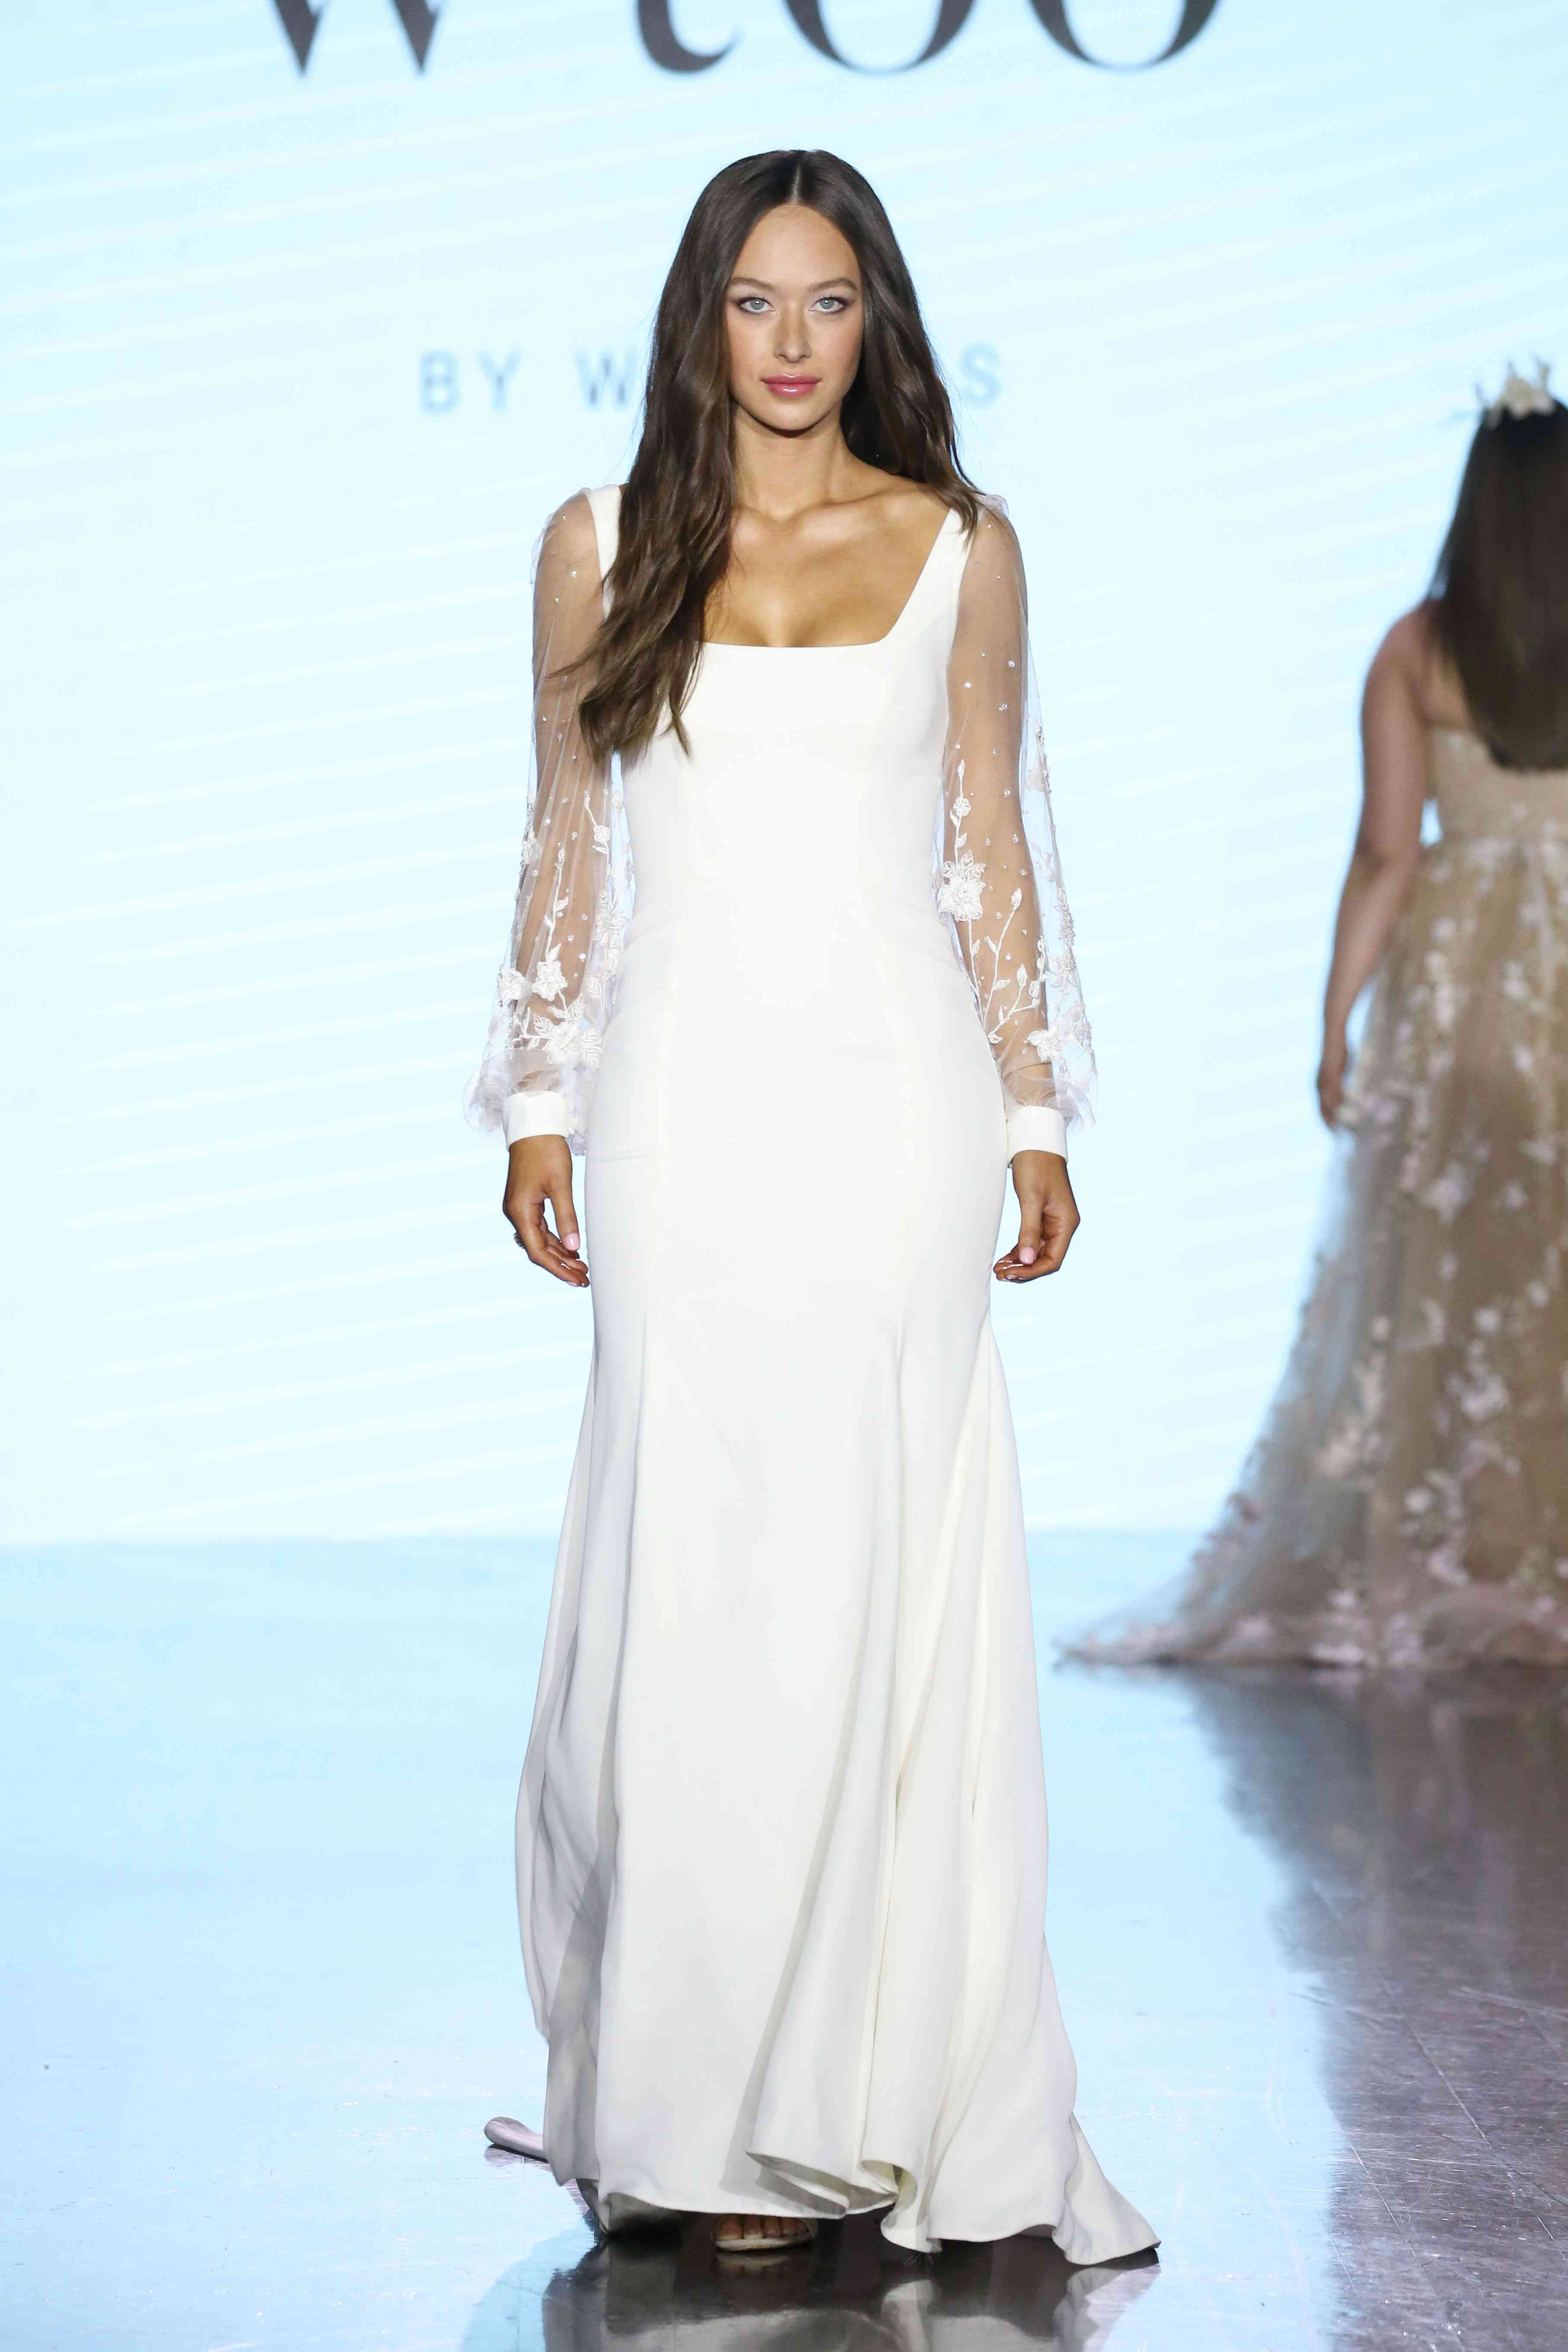 Model in a crepe wedding gown with a square neckline and floral embroidered illusion long sleeves